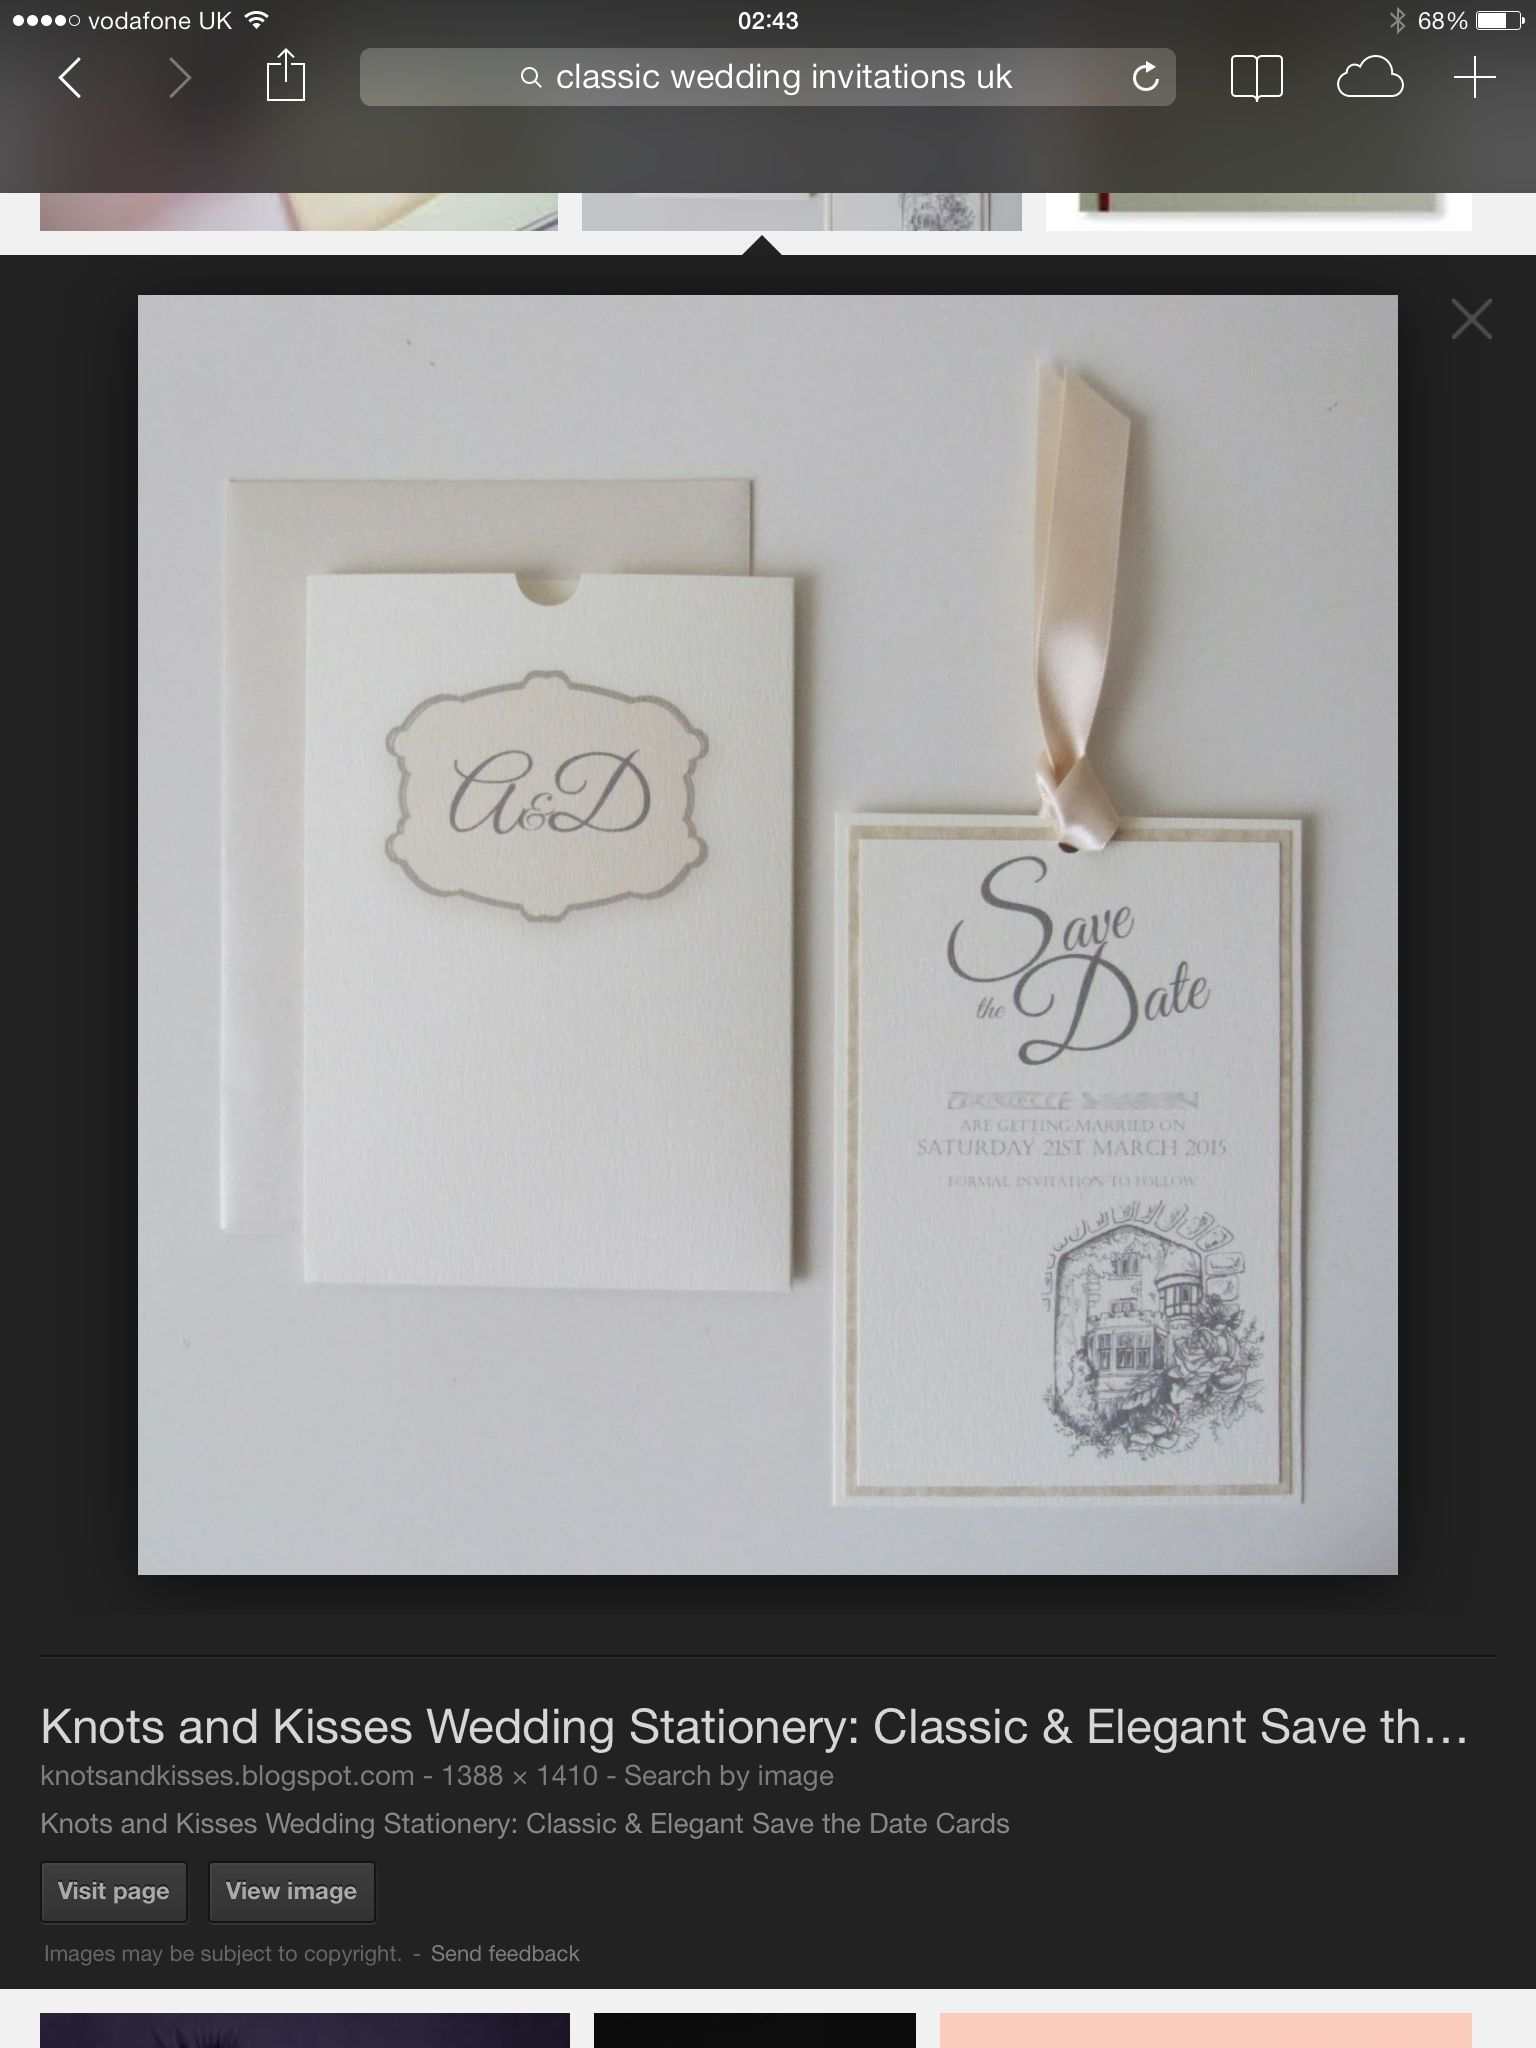 save the date wedding stationery pinterest